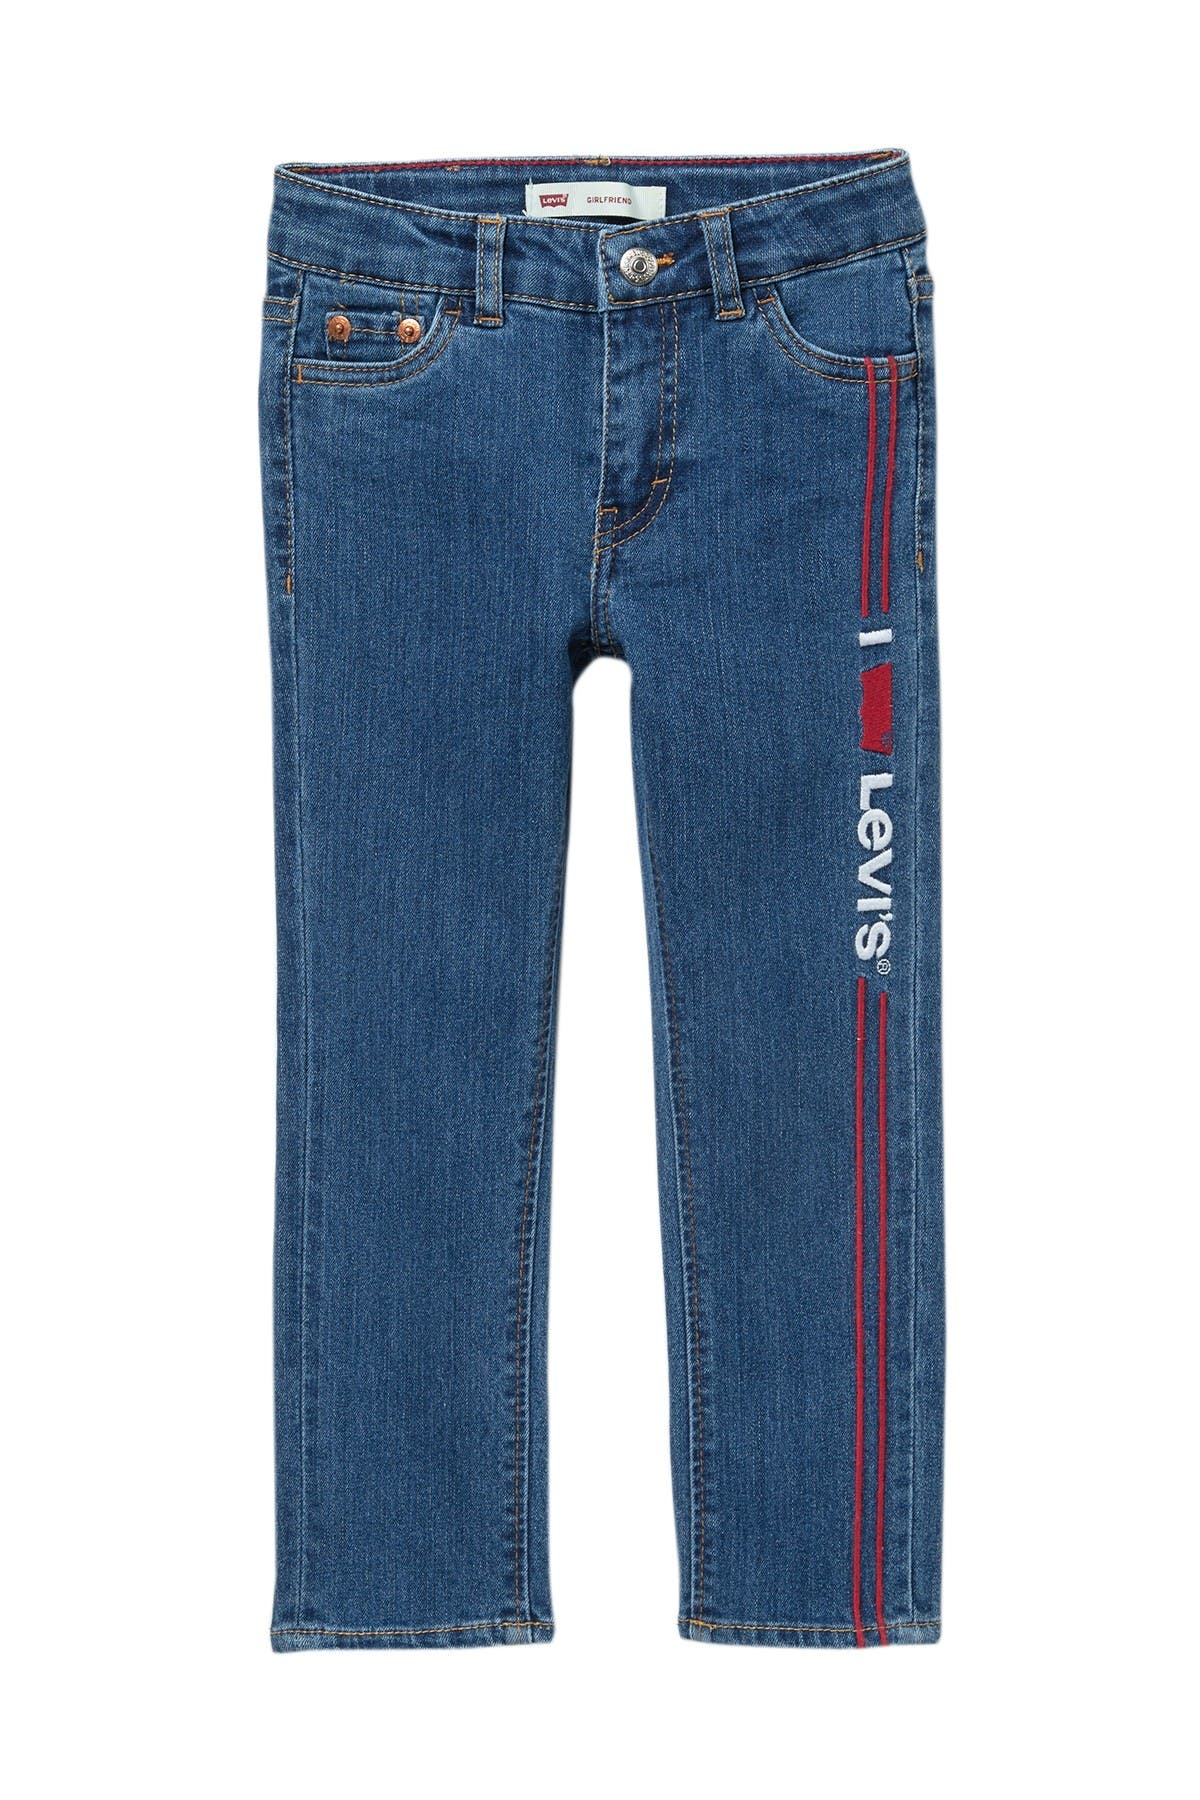 Image of Levi's Girlfriend Jeans